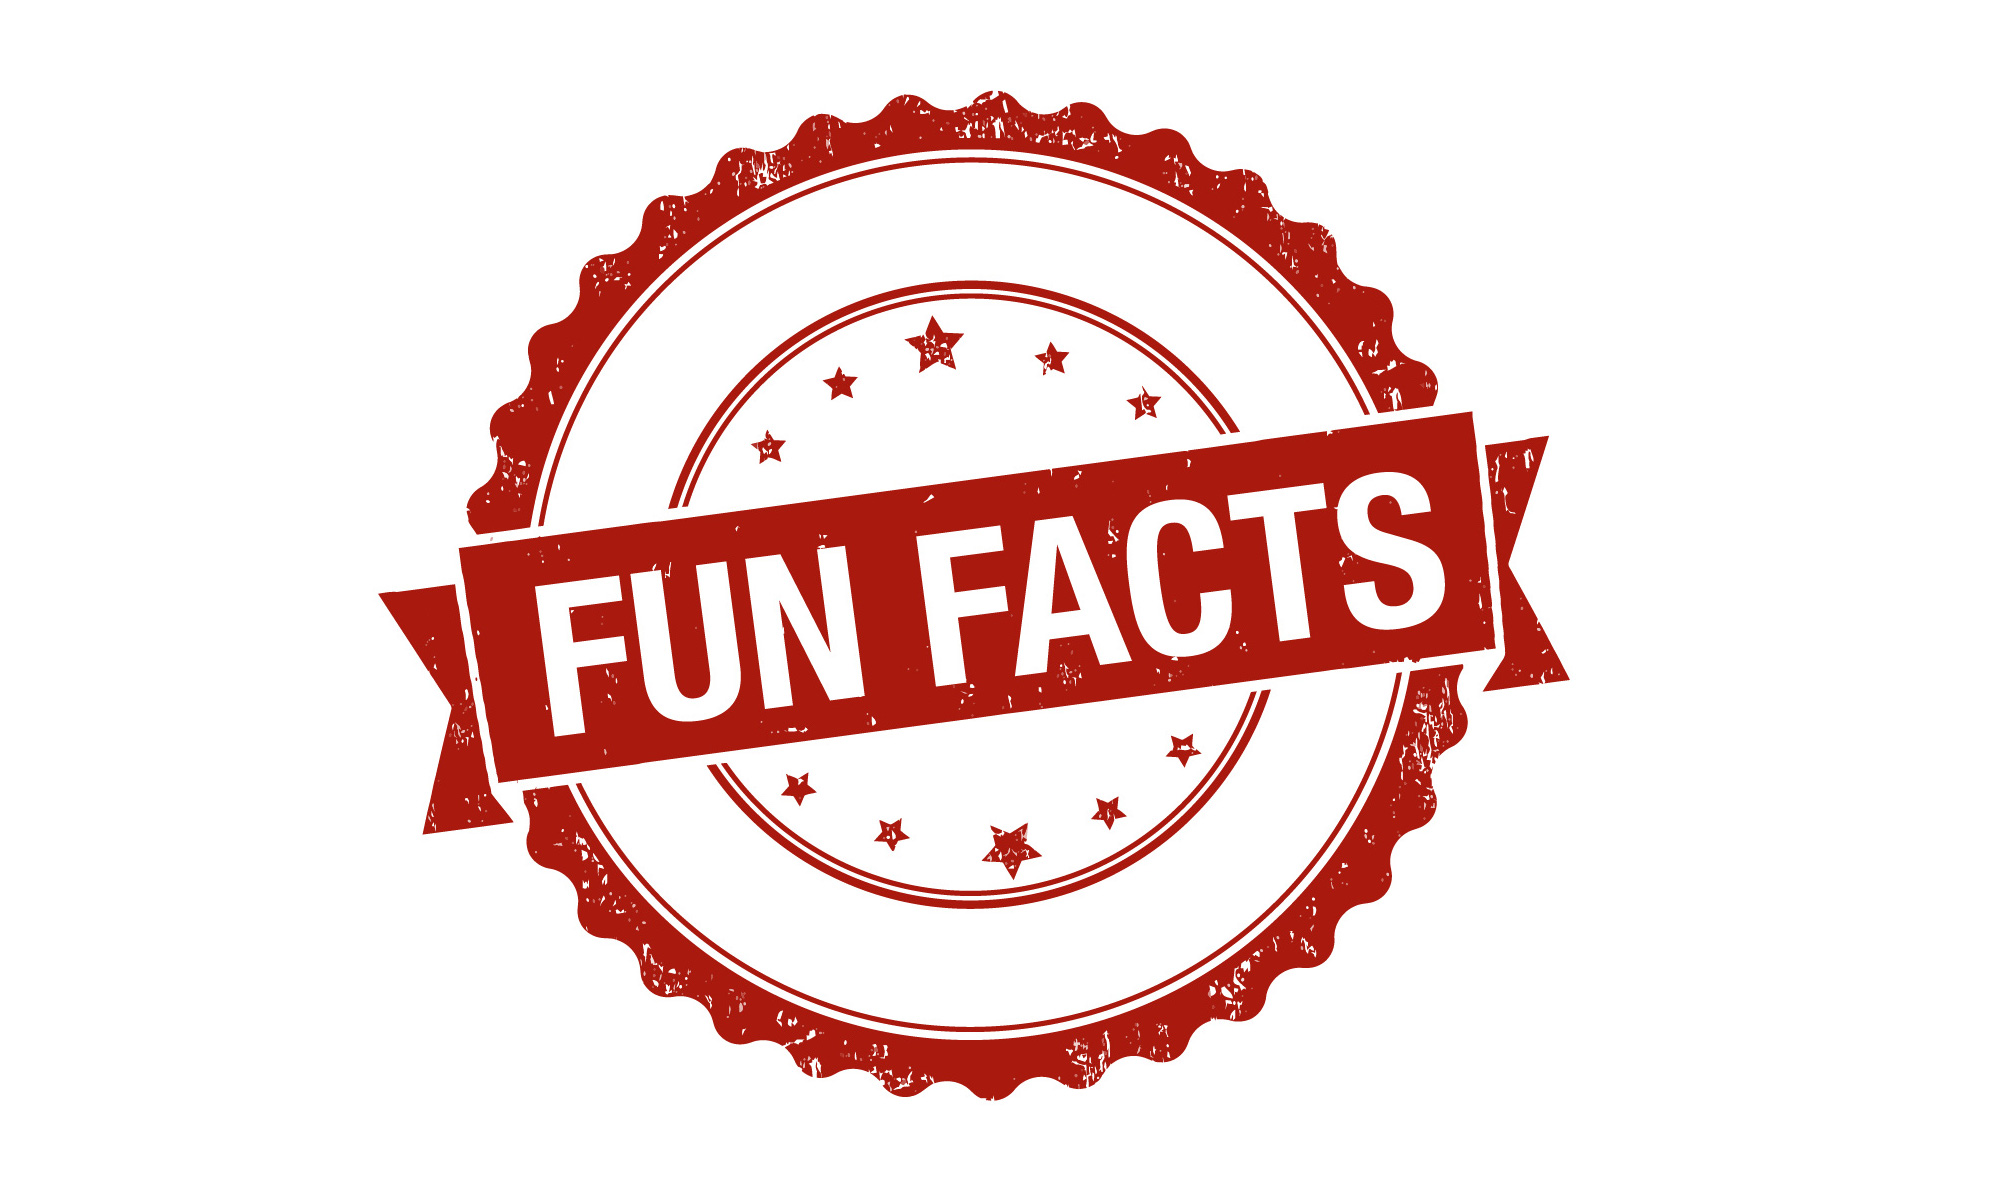 Amazing facts clipart